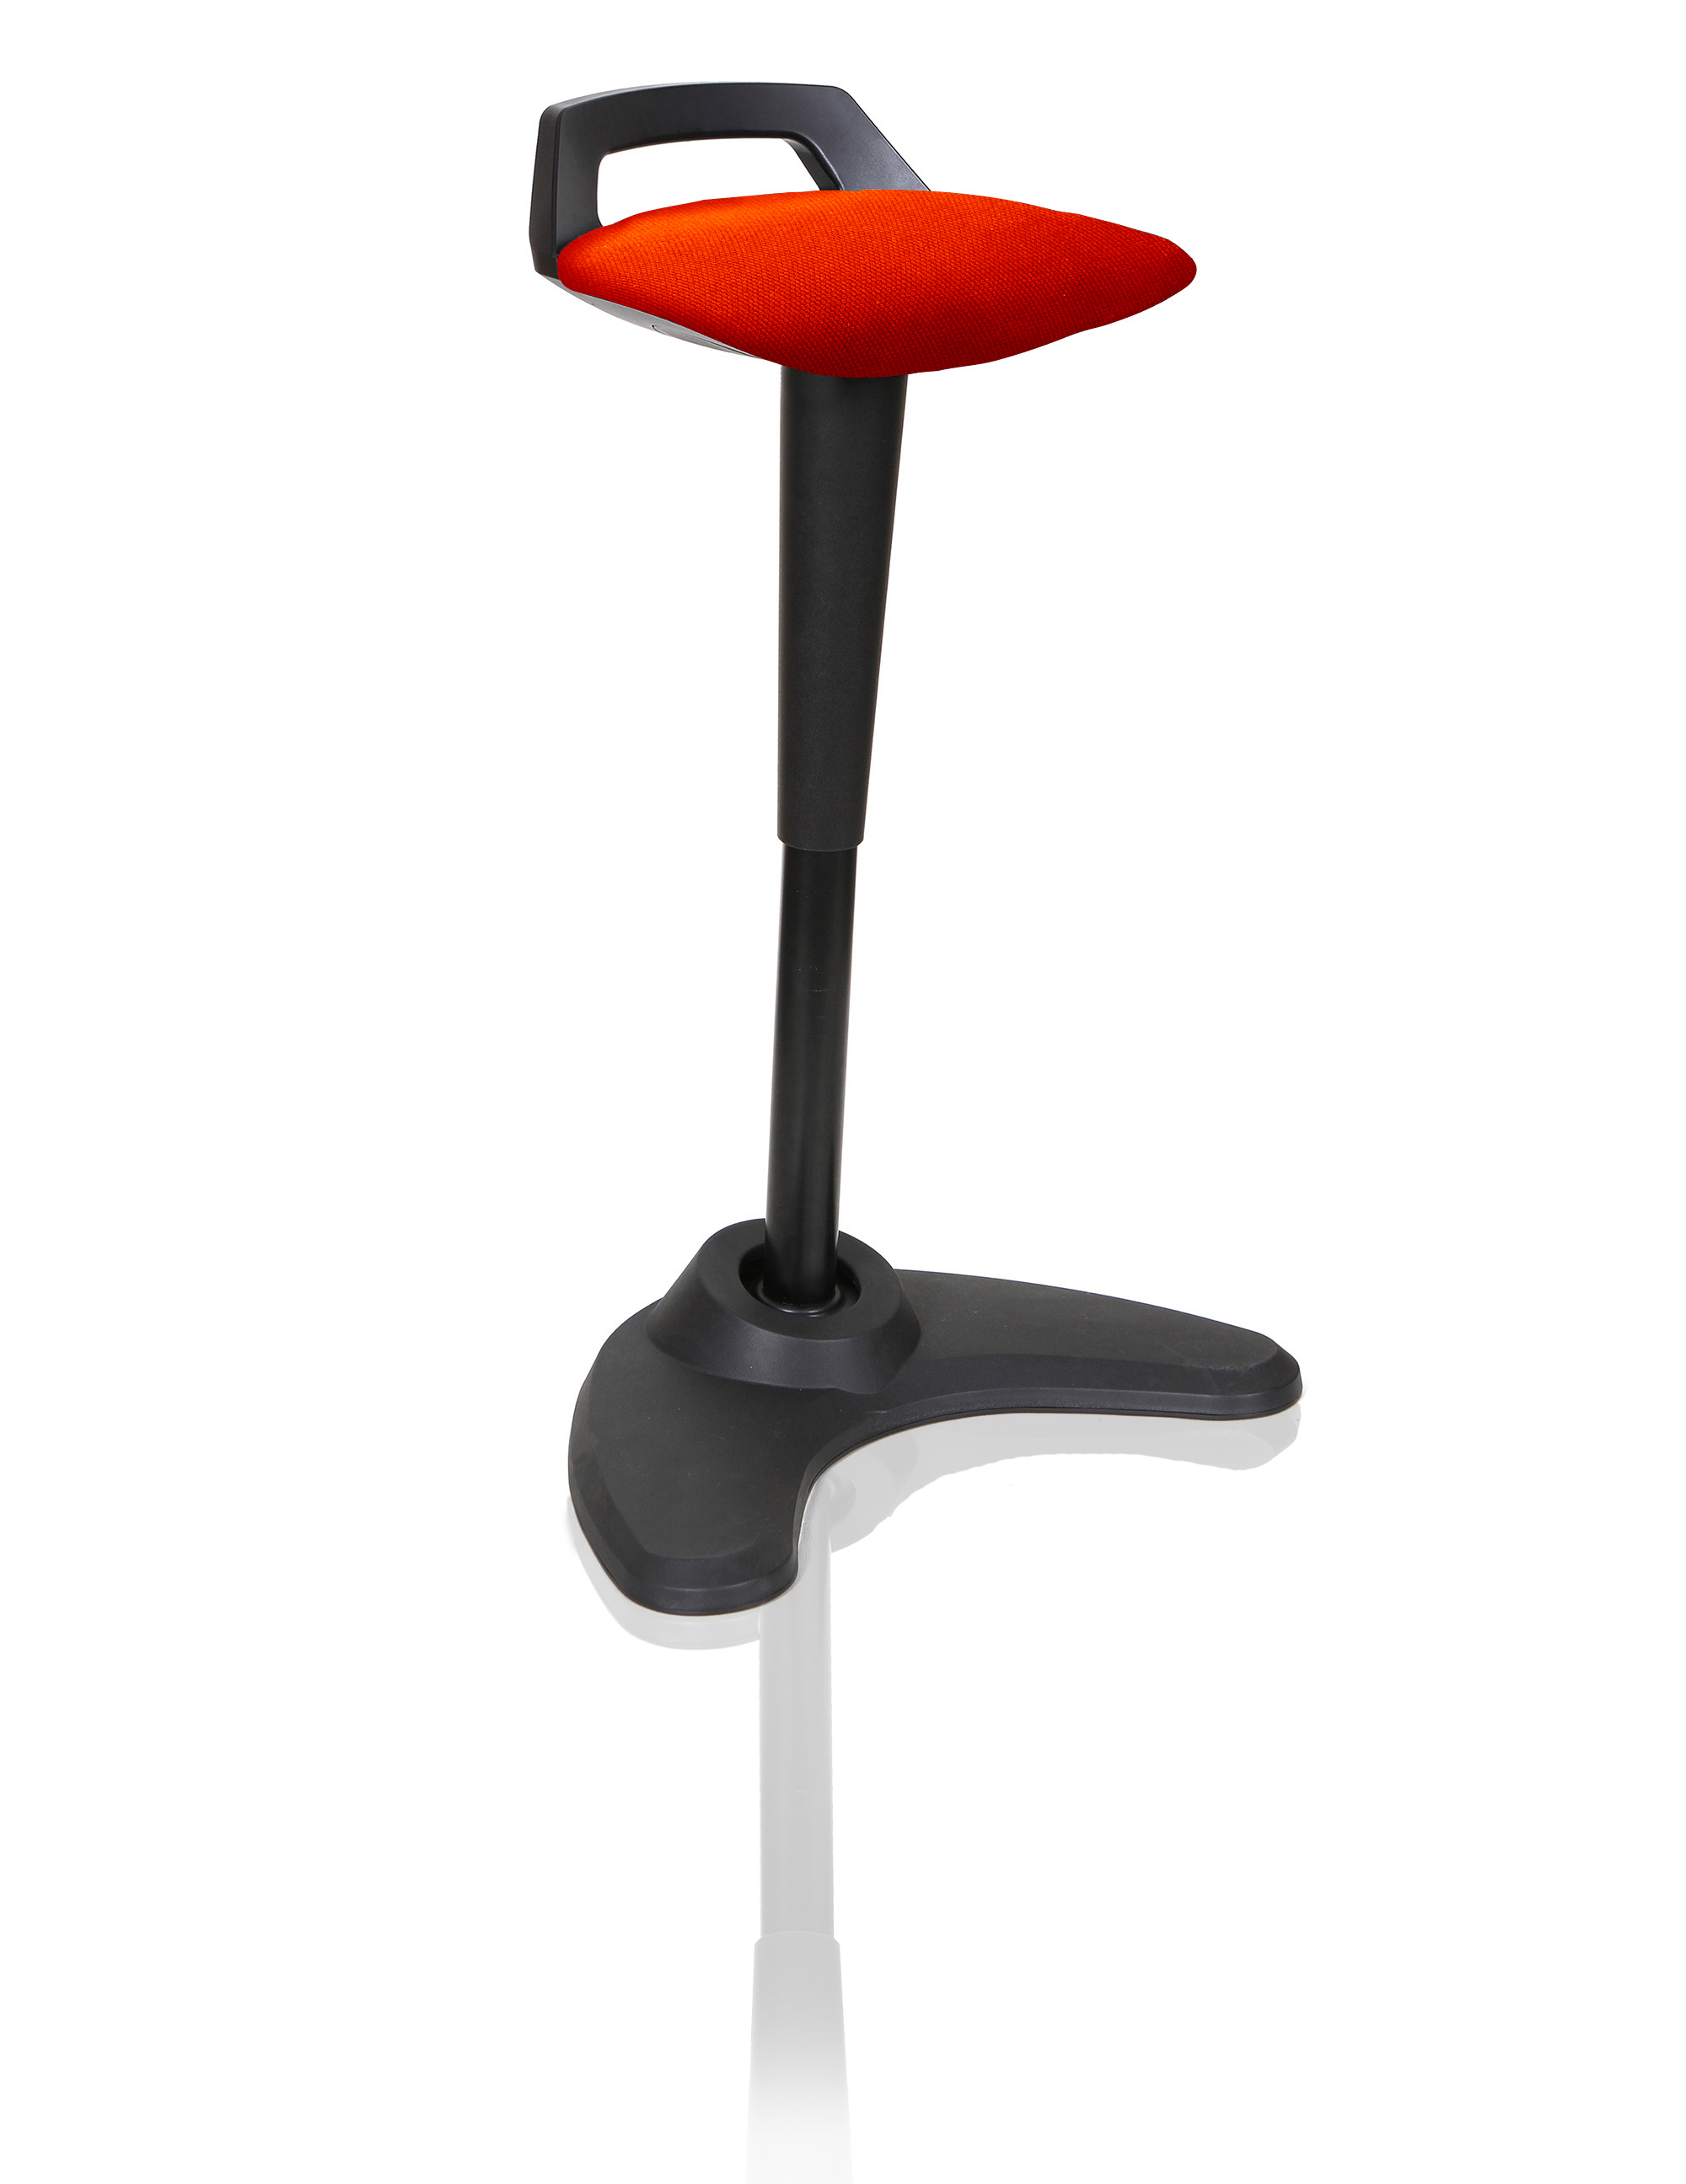 Spry Stool Black Frame Bespoke Seat Tabasco Red KCUP1205